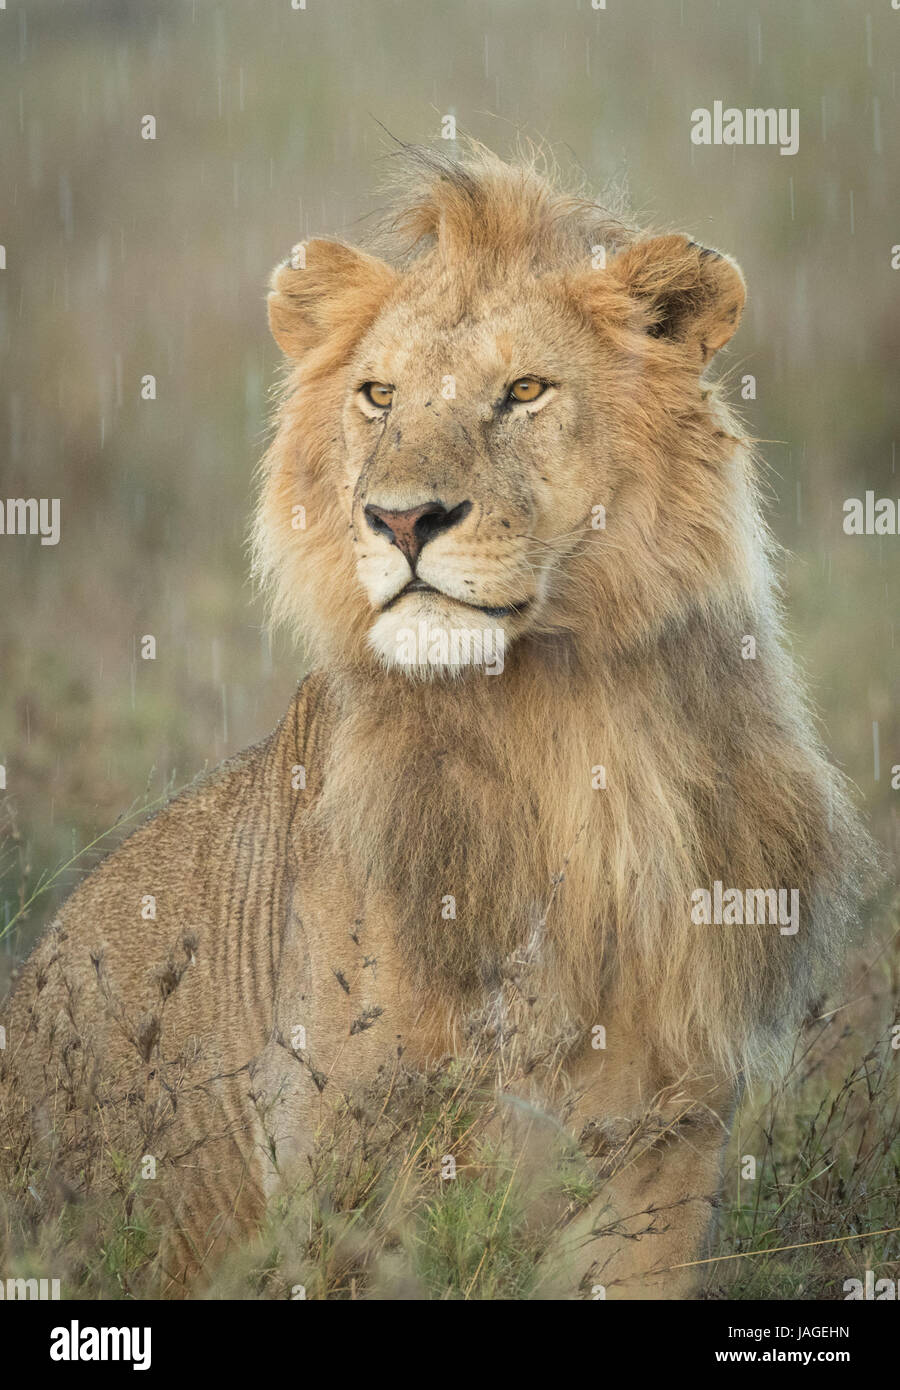 Alert Male Lion standing in the rain, Serengeti National Park, Tanzania - Stock Image